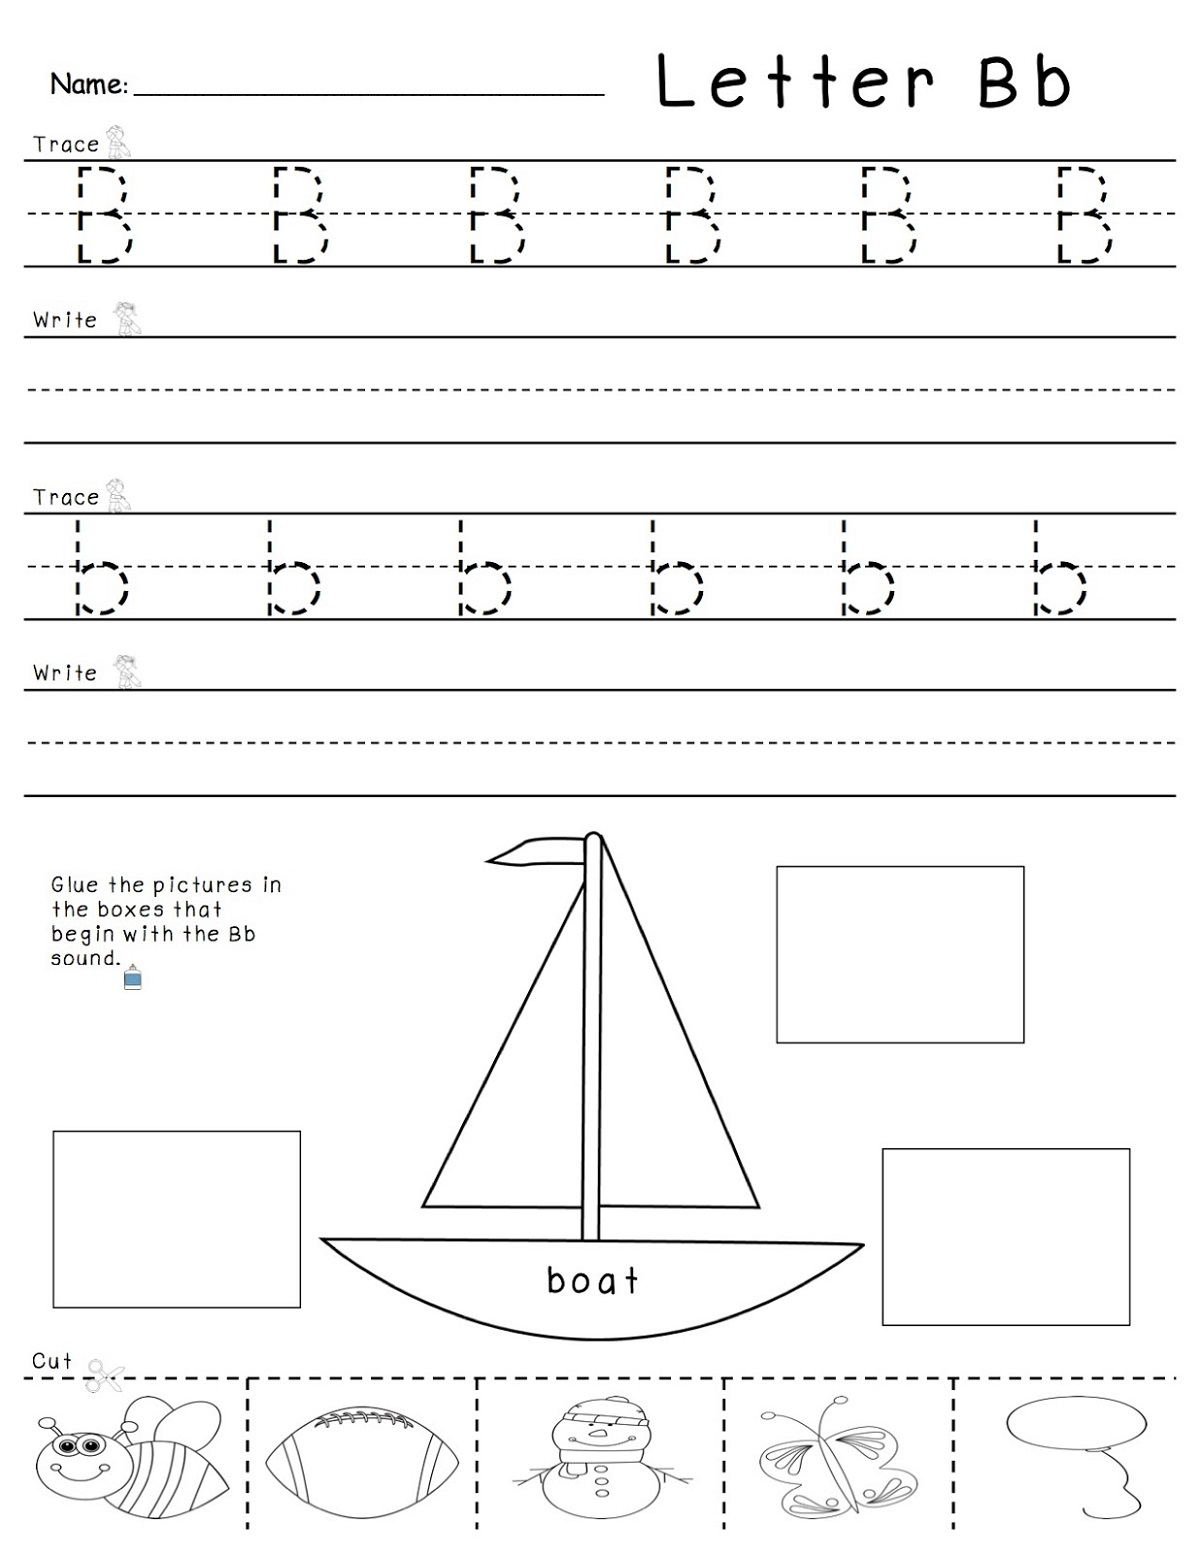 trace-letter-b-practice